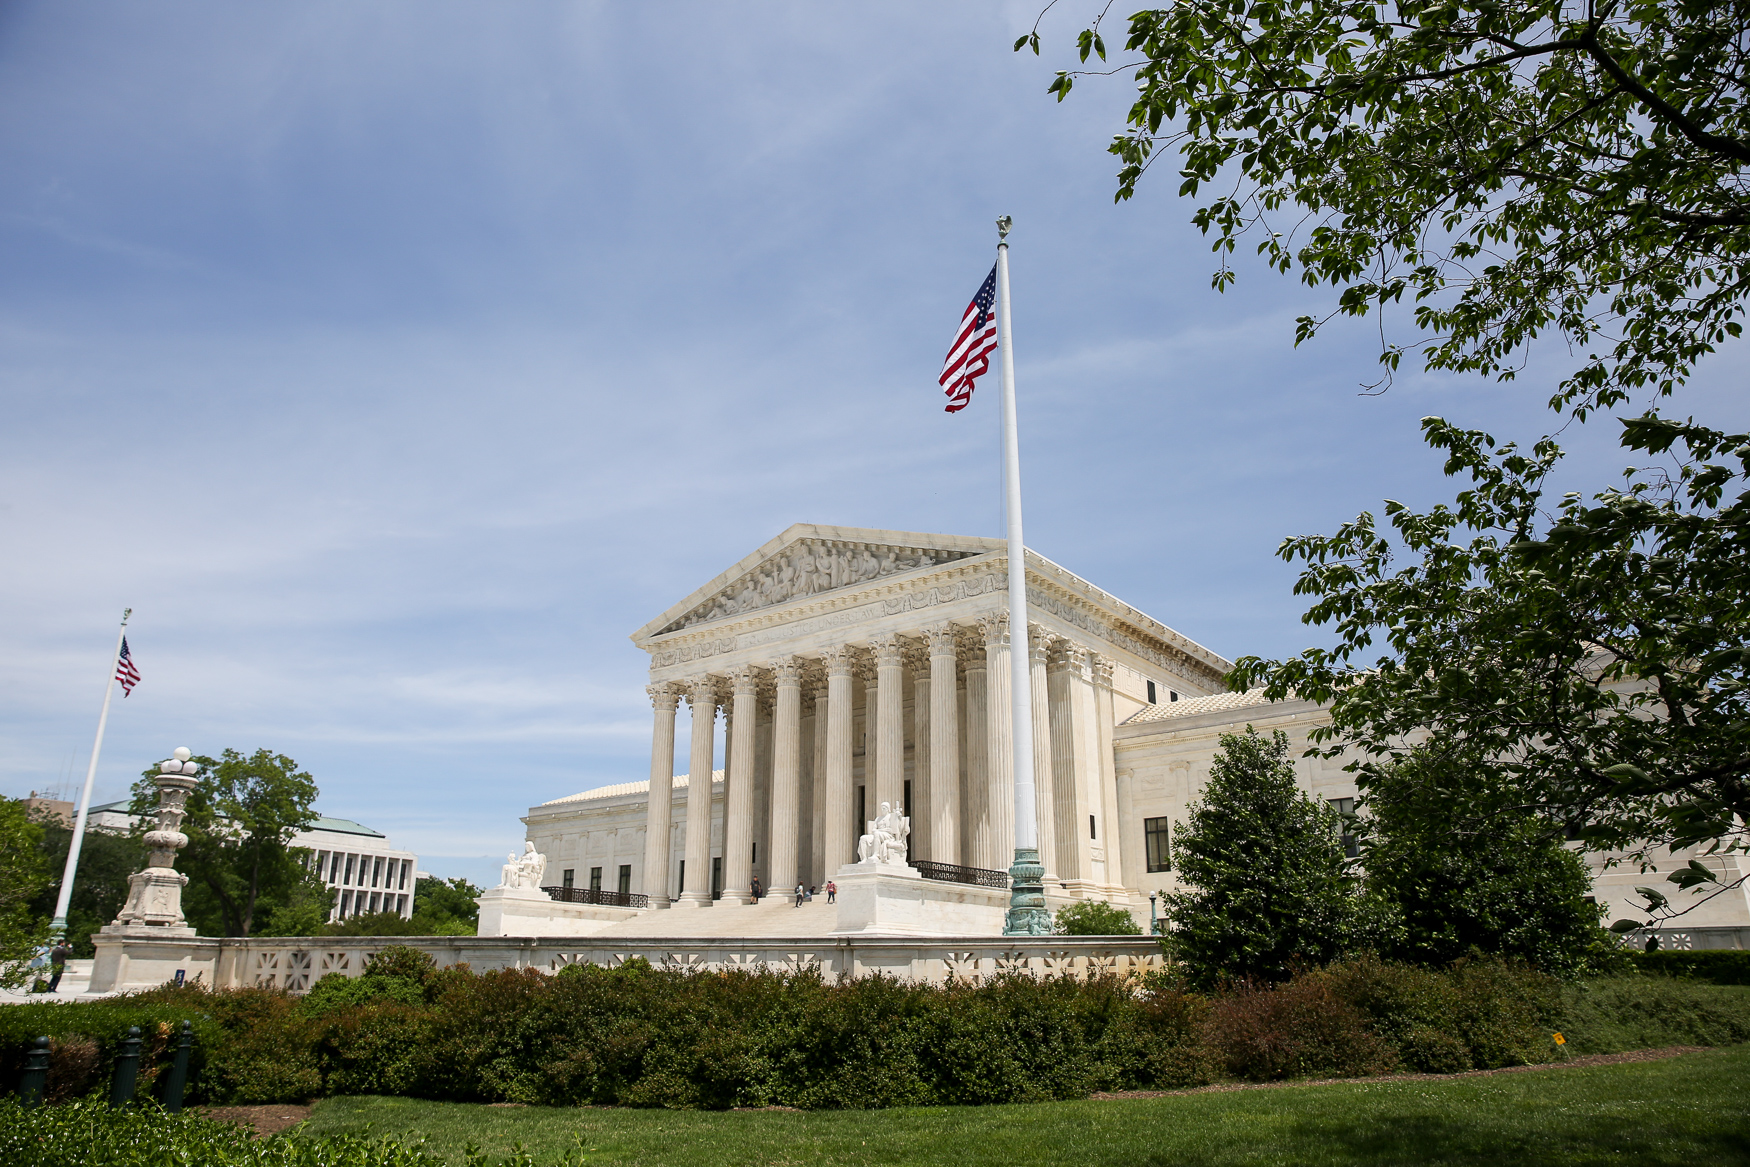 Fun fact! The Supreme Court didn't have a permanent location to adjourn until 1810.